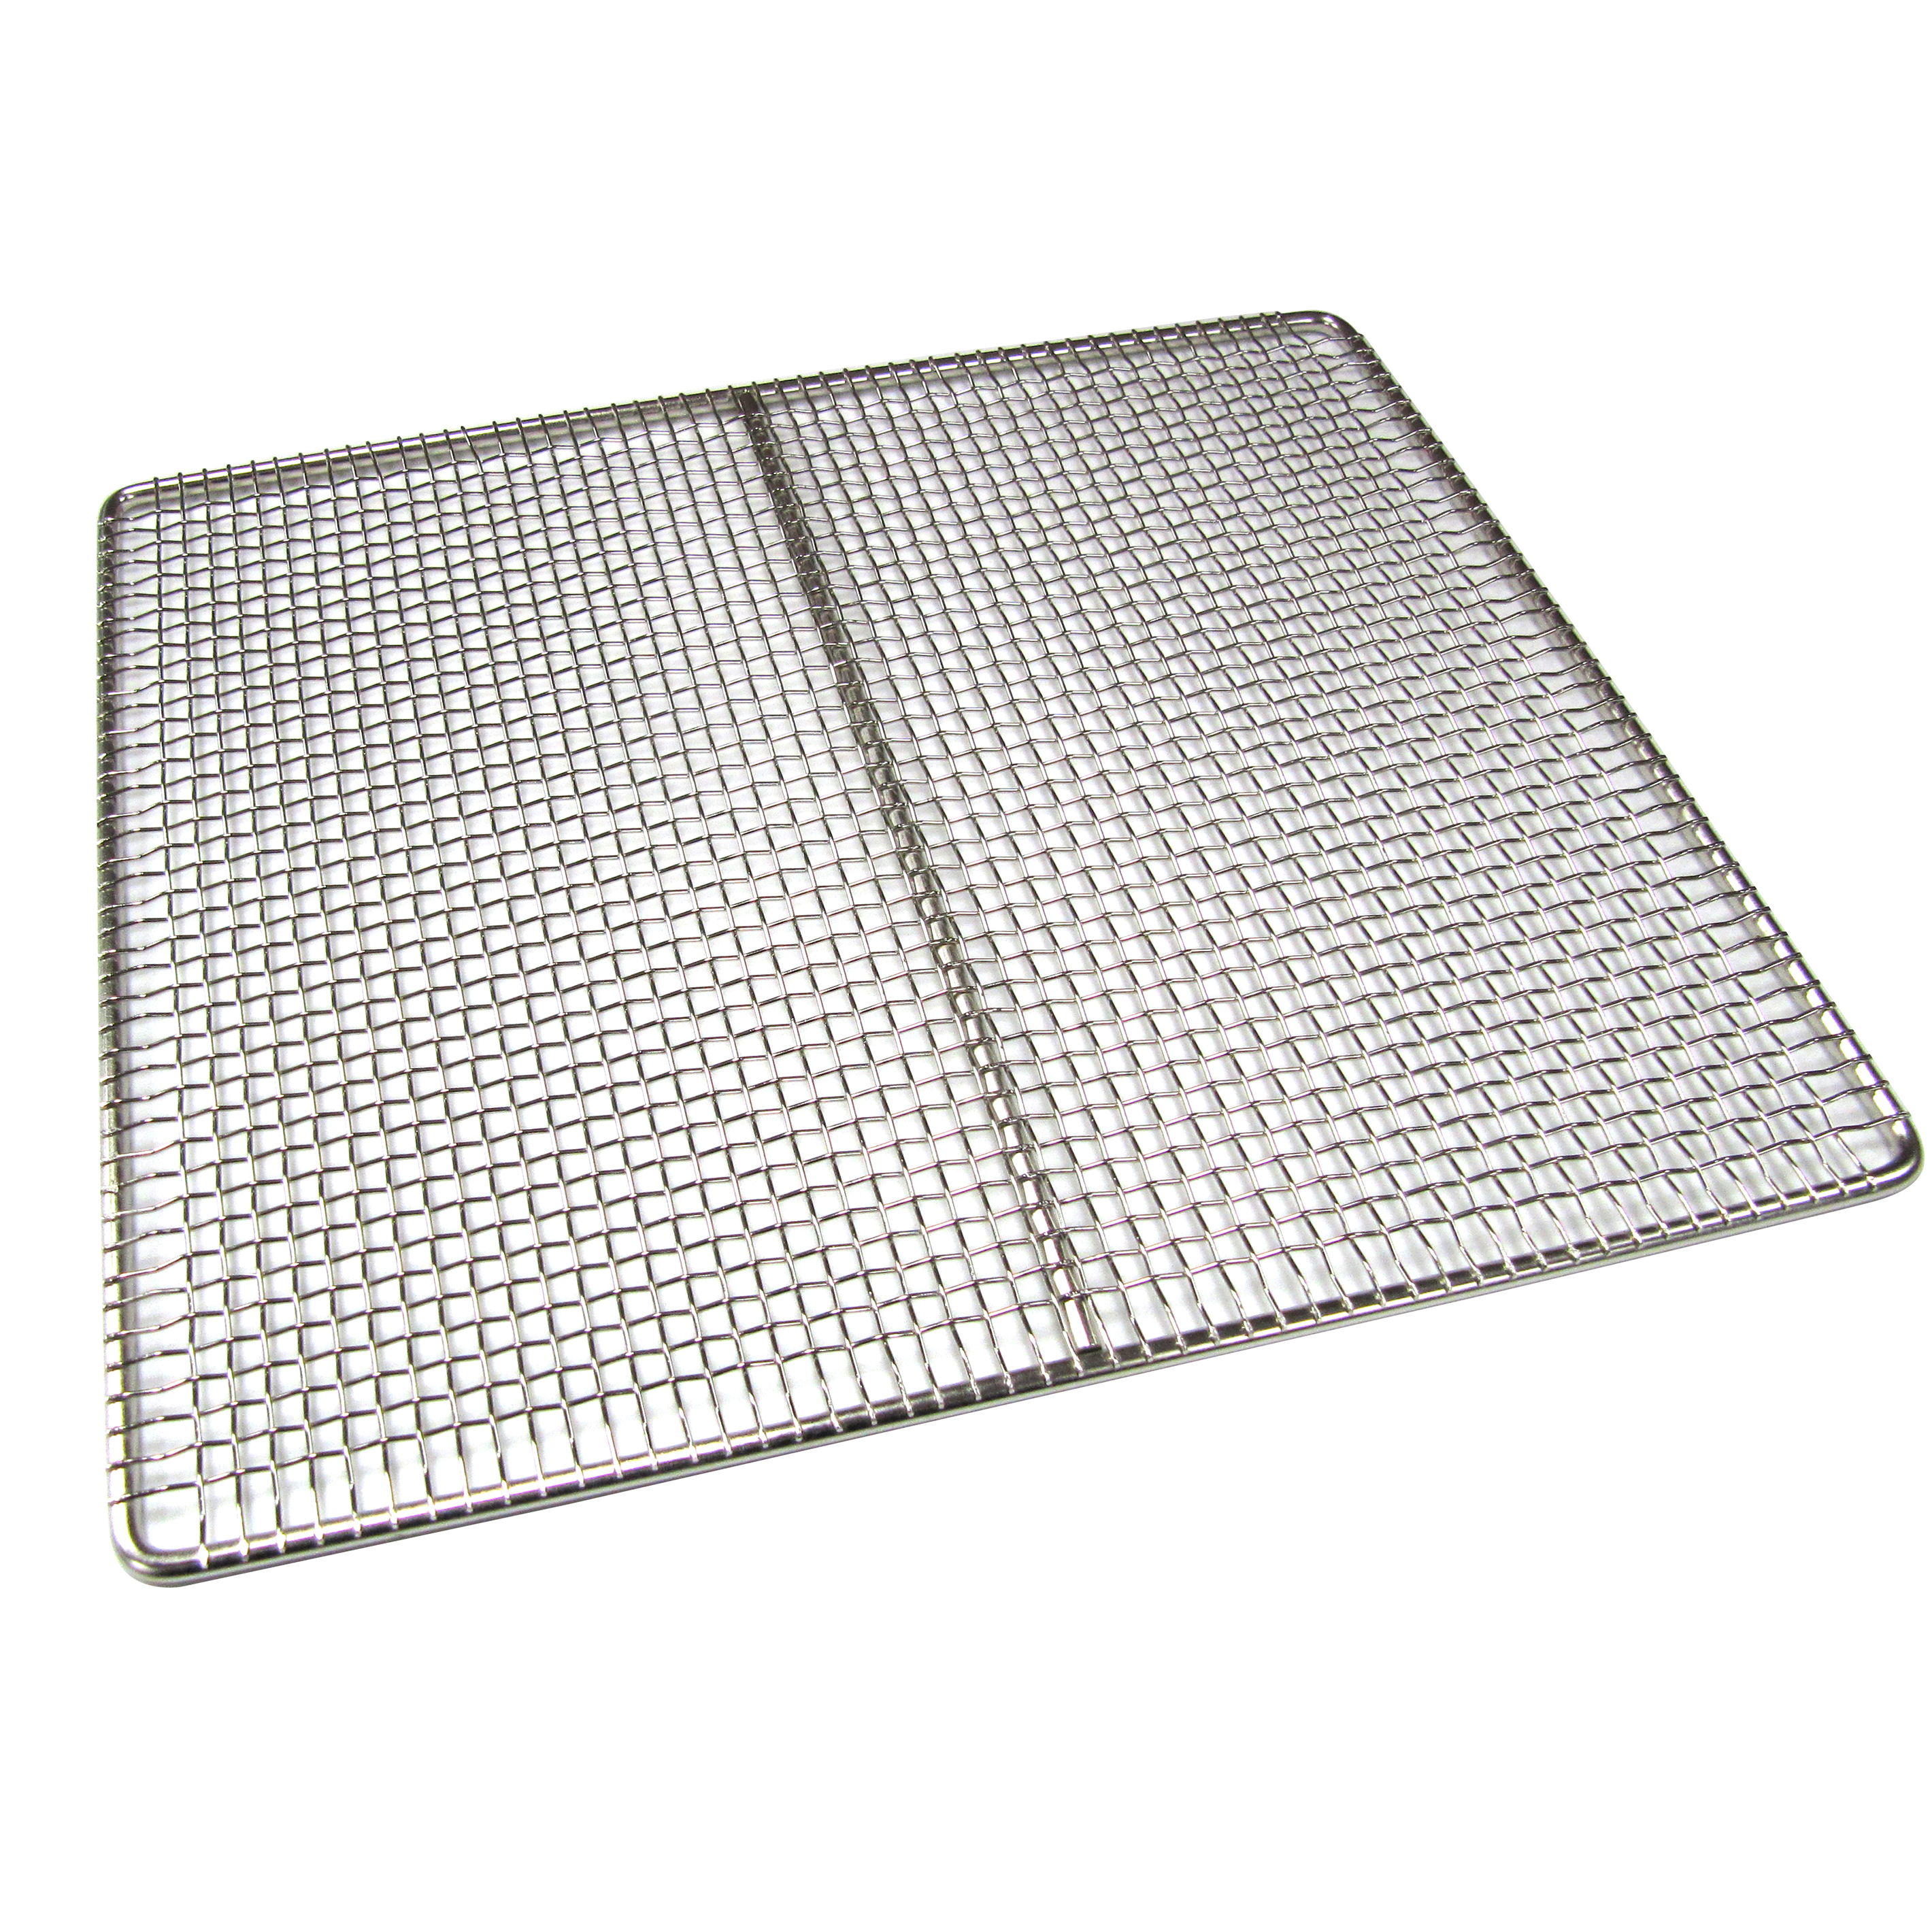 4950-92 Admiral Craft GR-18H wire pan rack / grate